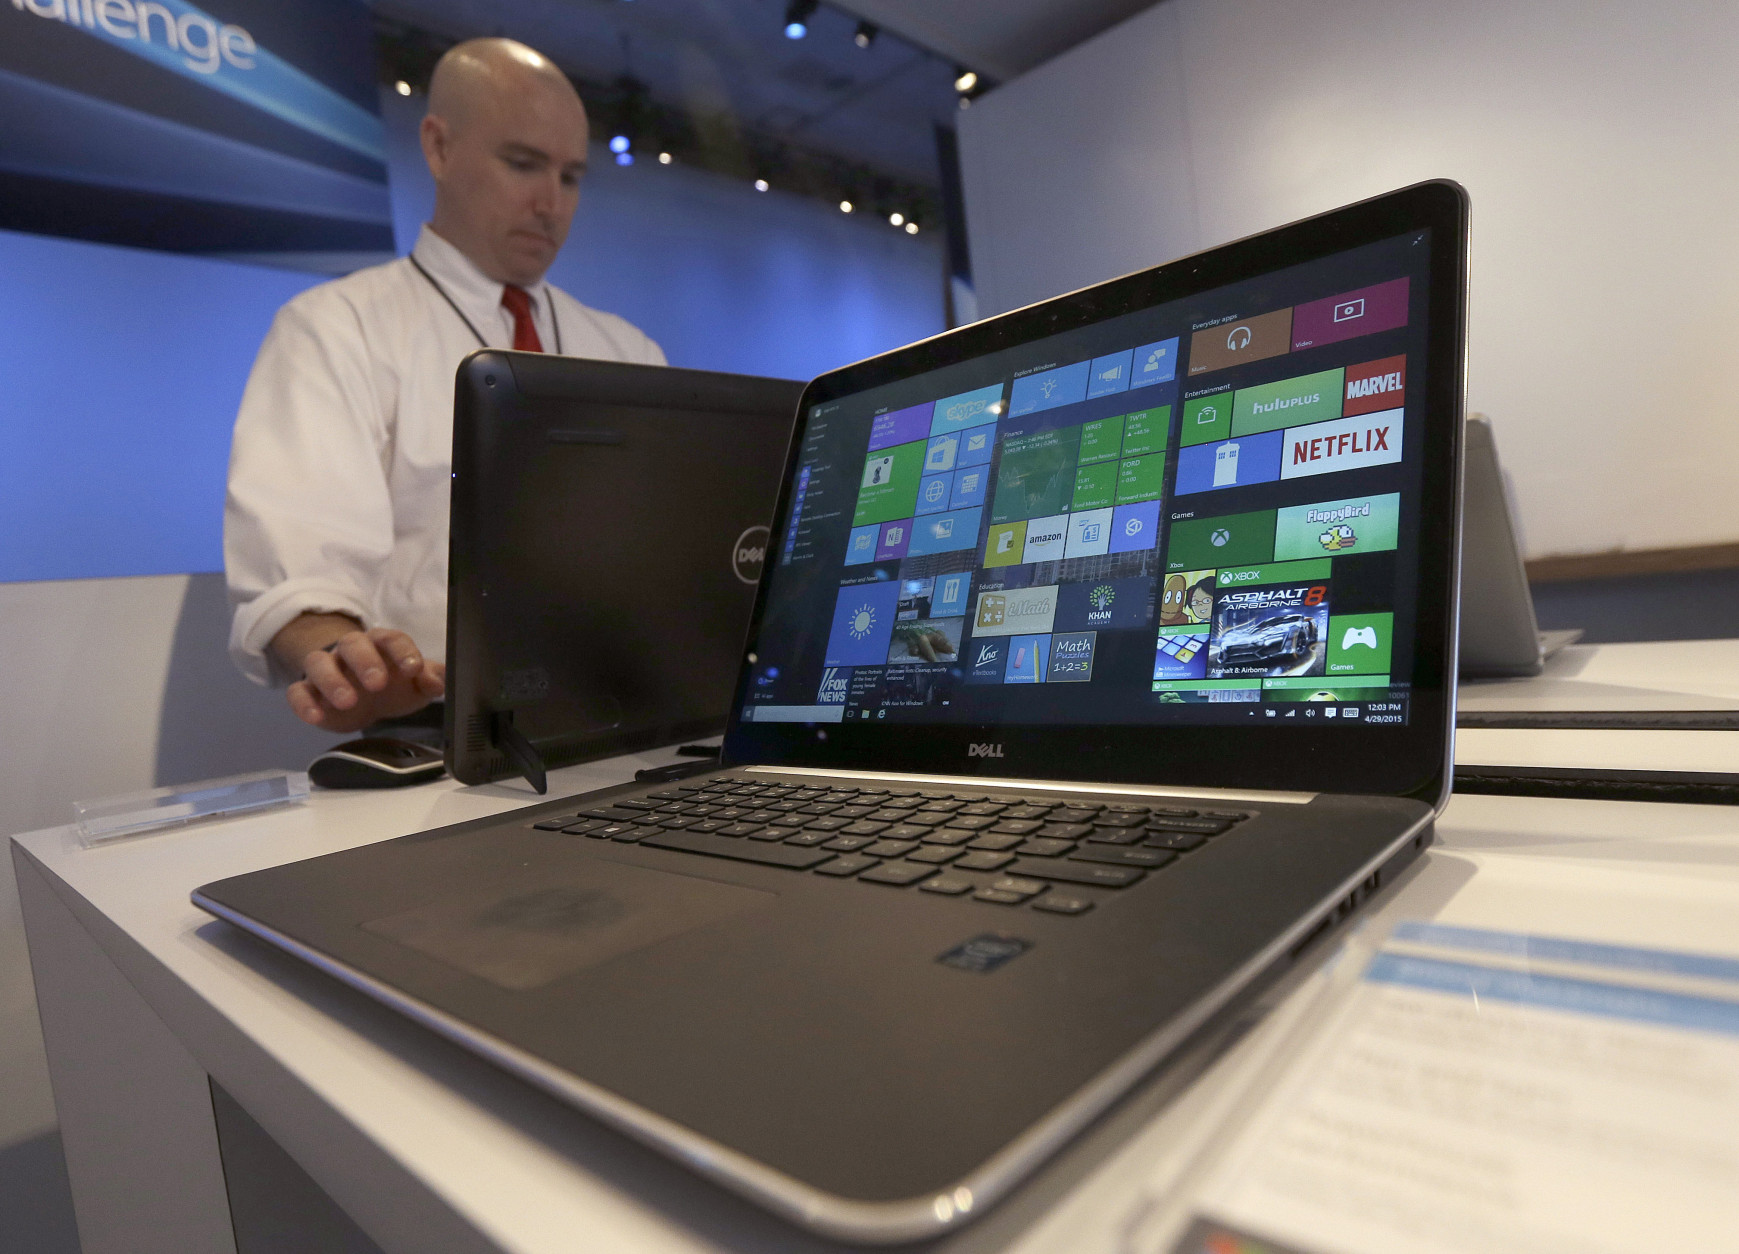 Column: Is Windows 10 really a privacy nightmare?